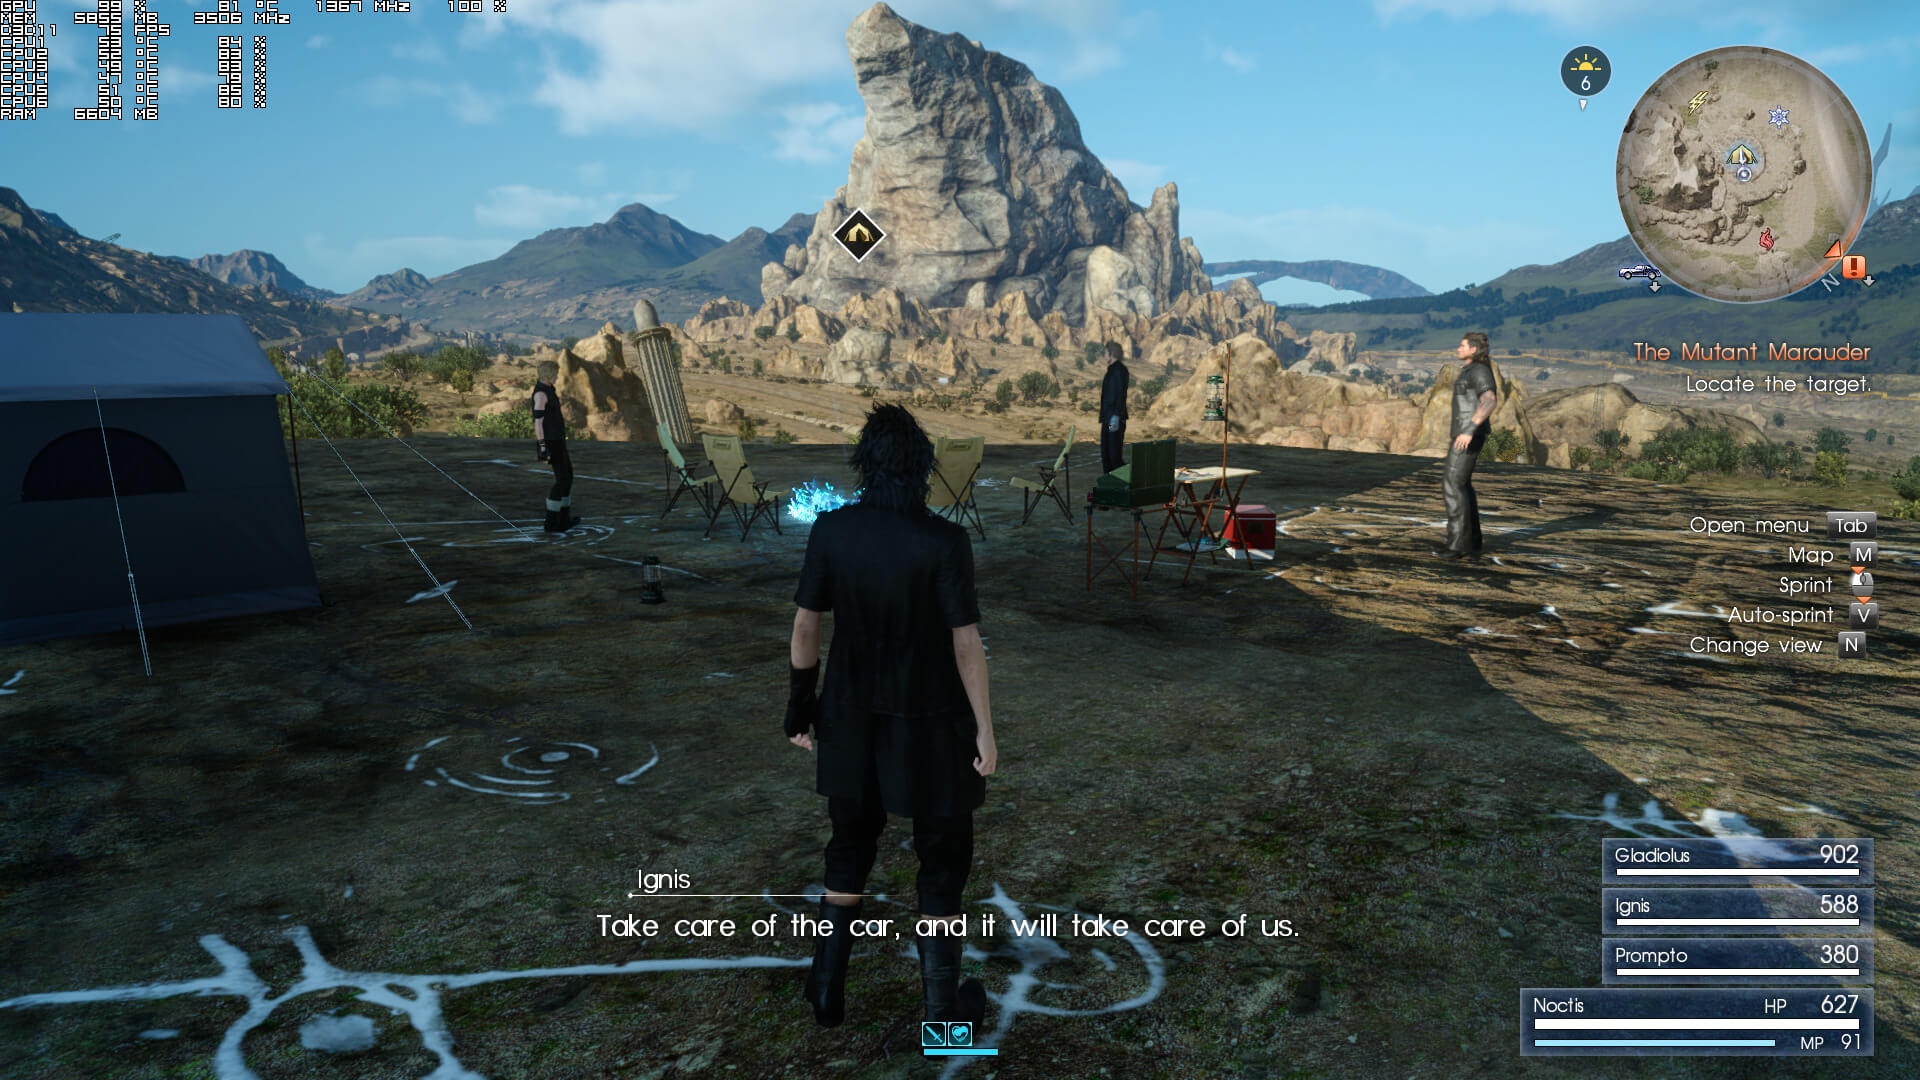 Report: The pirated version of Final Fantasy XV runs faster